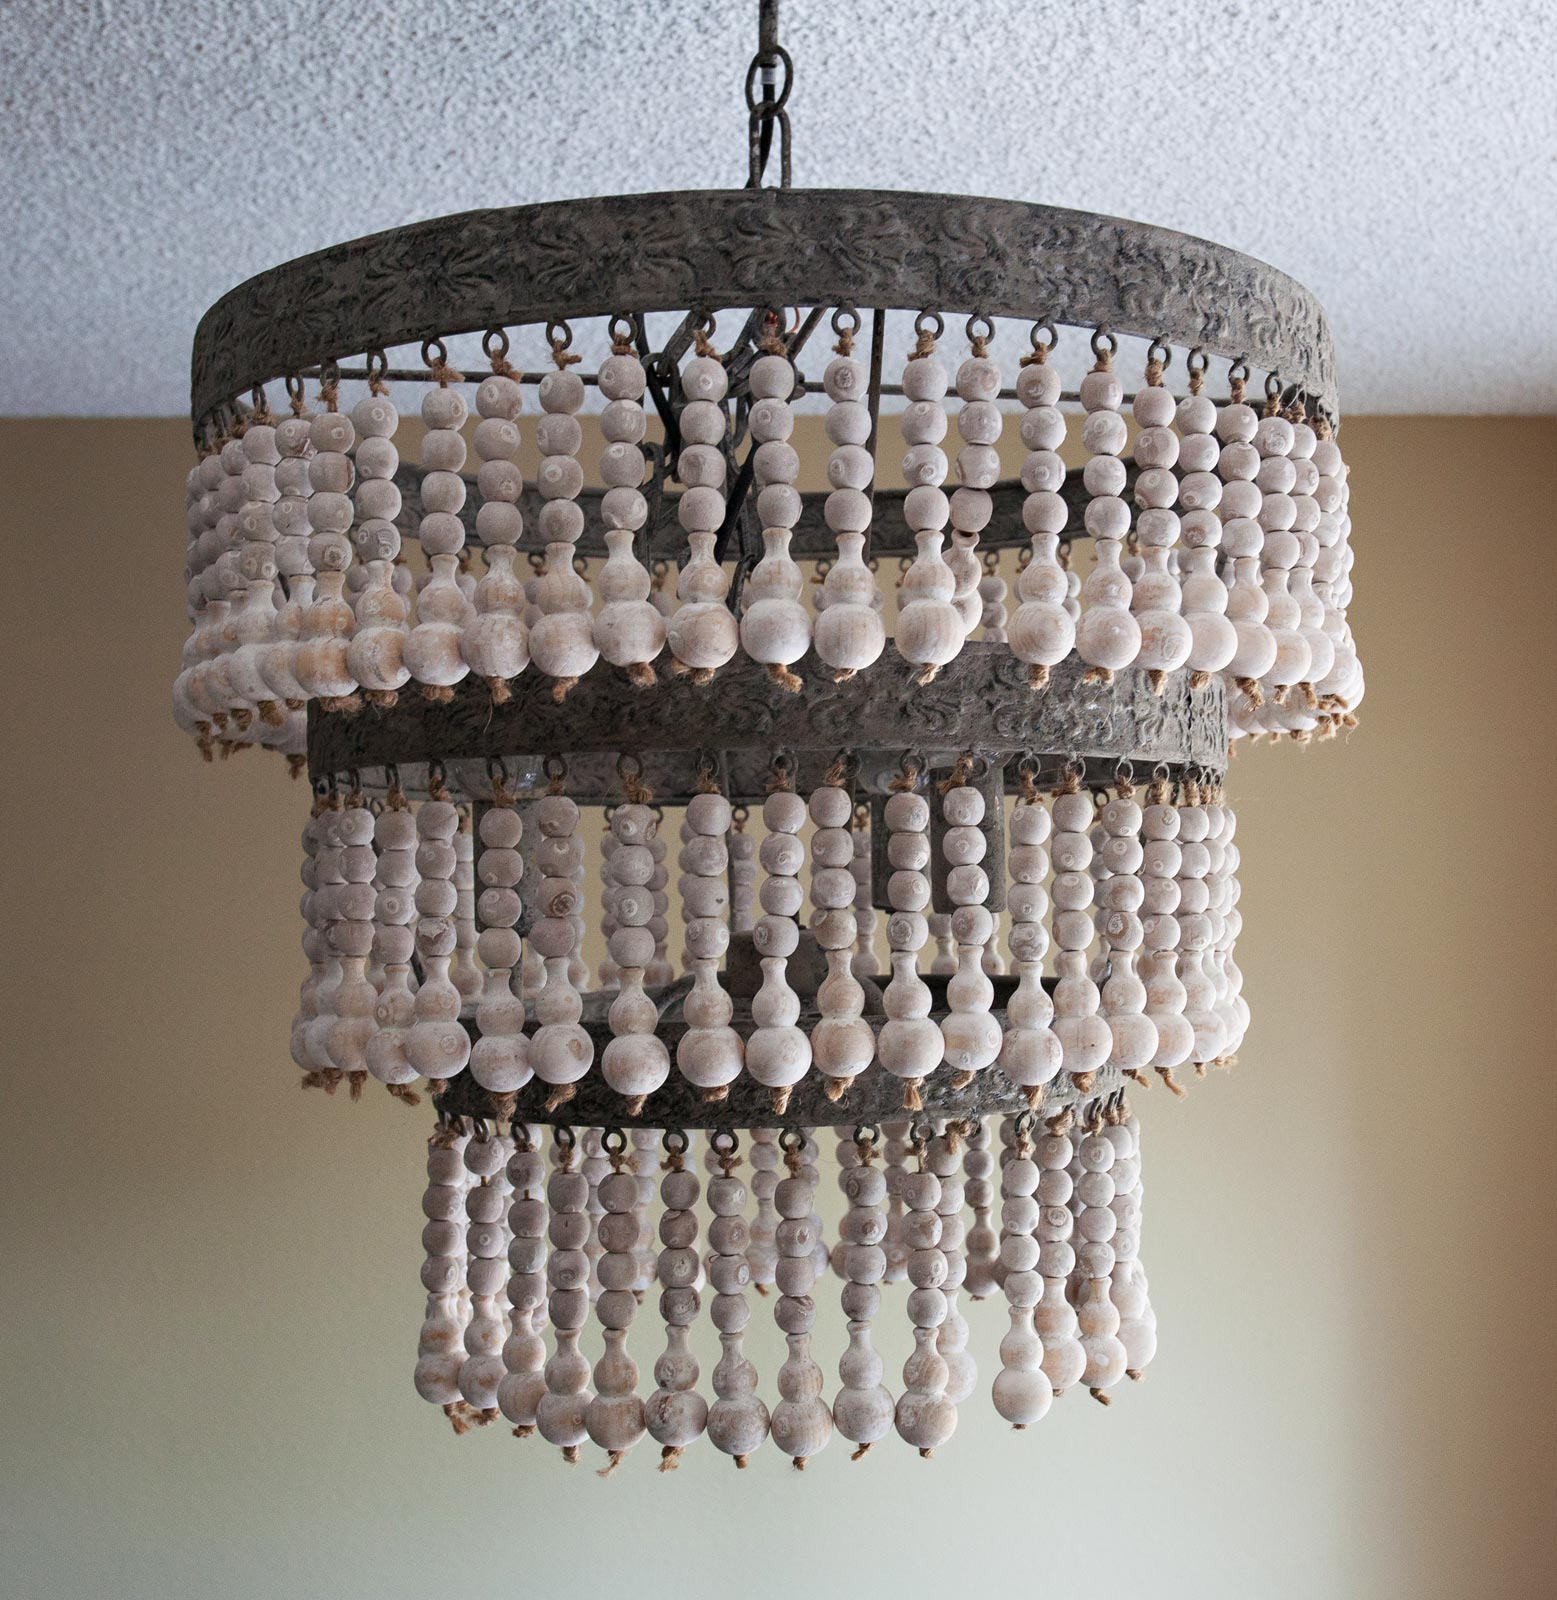 Awesome white wood bead chandelier with Ceiling Light Fixture Furnishing for living room Ideas